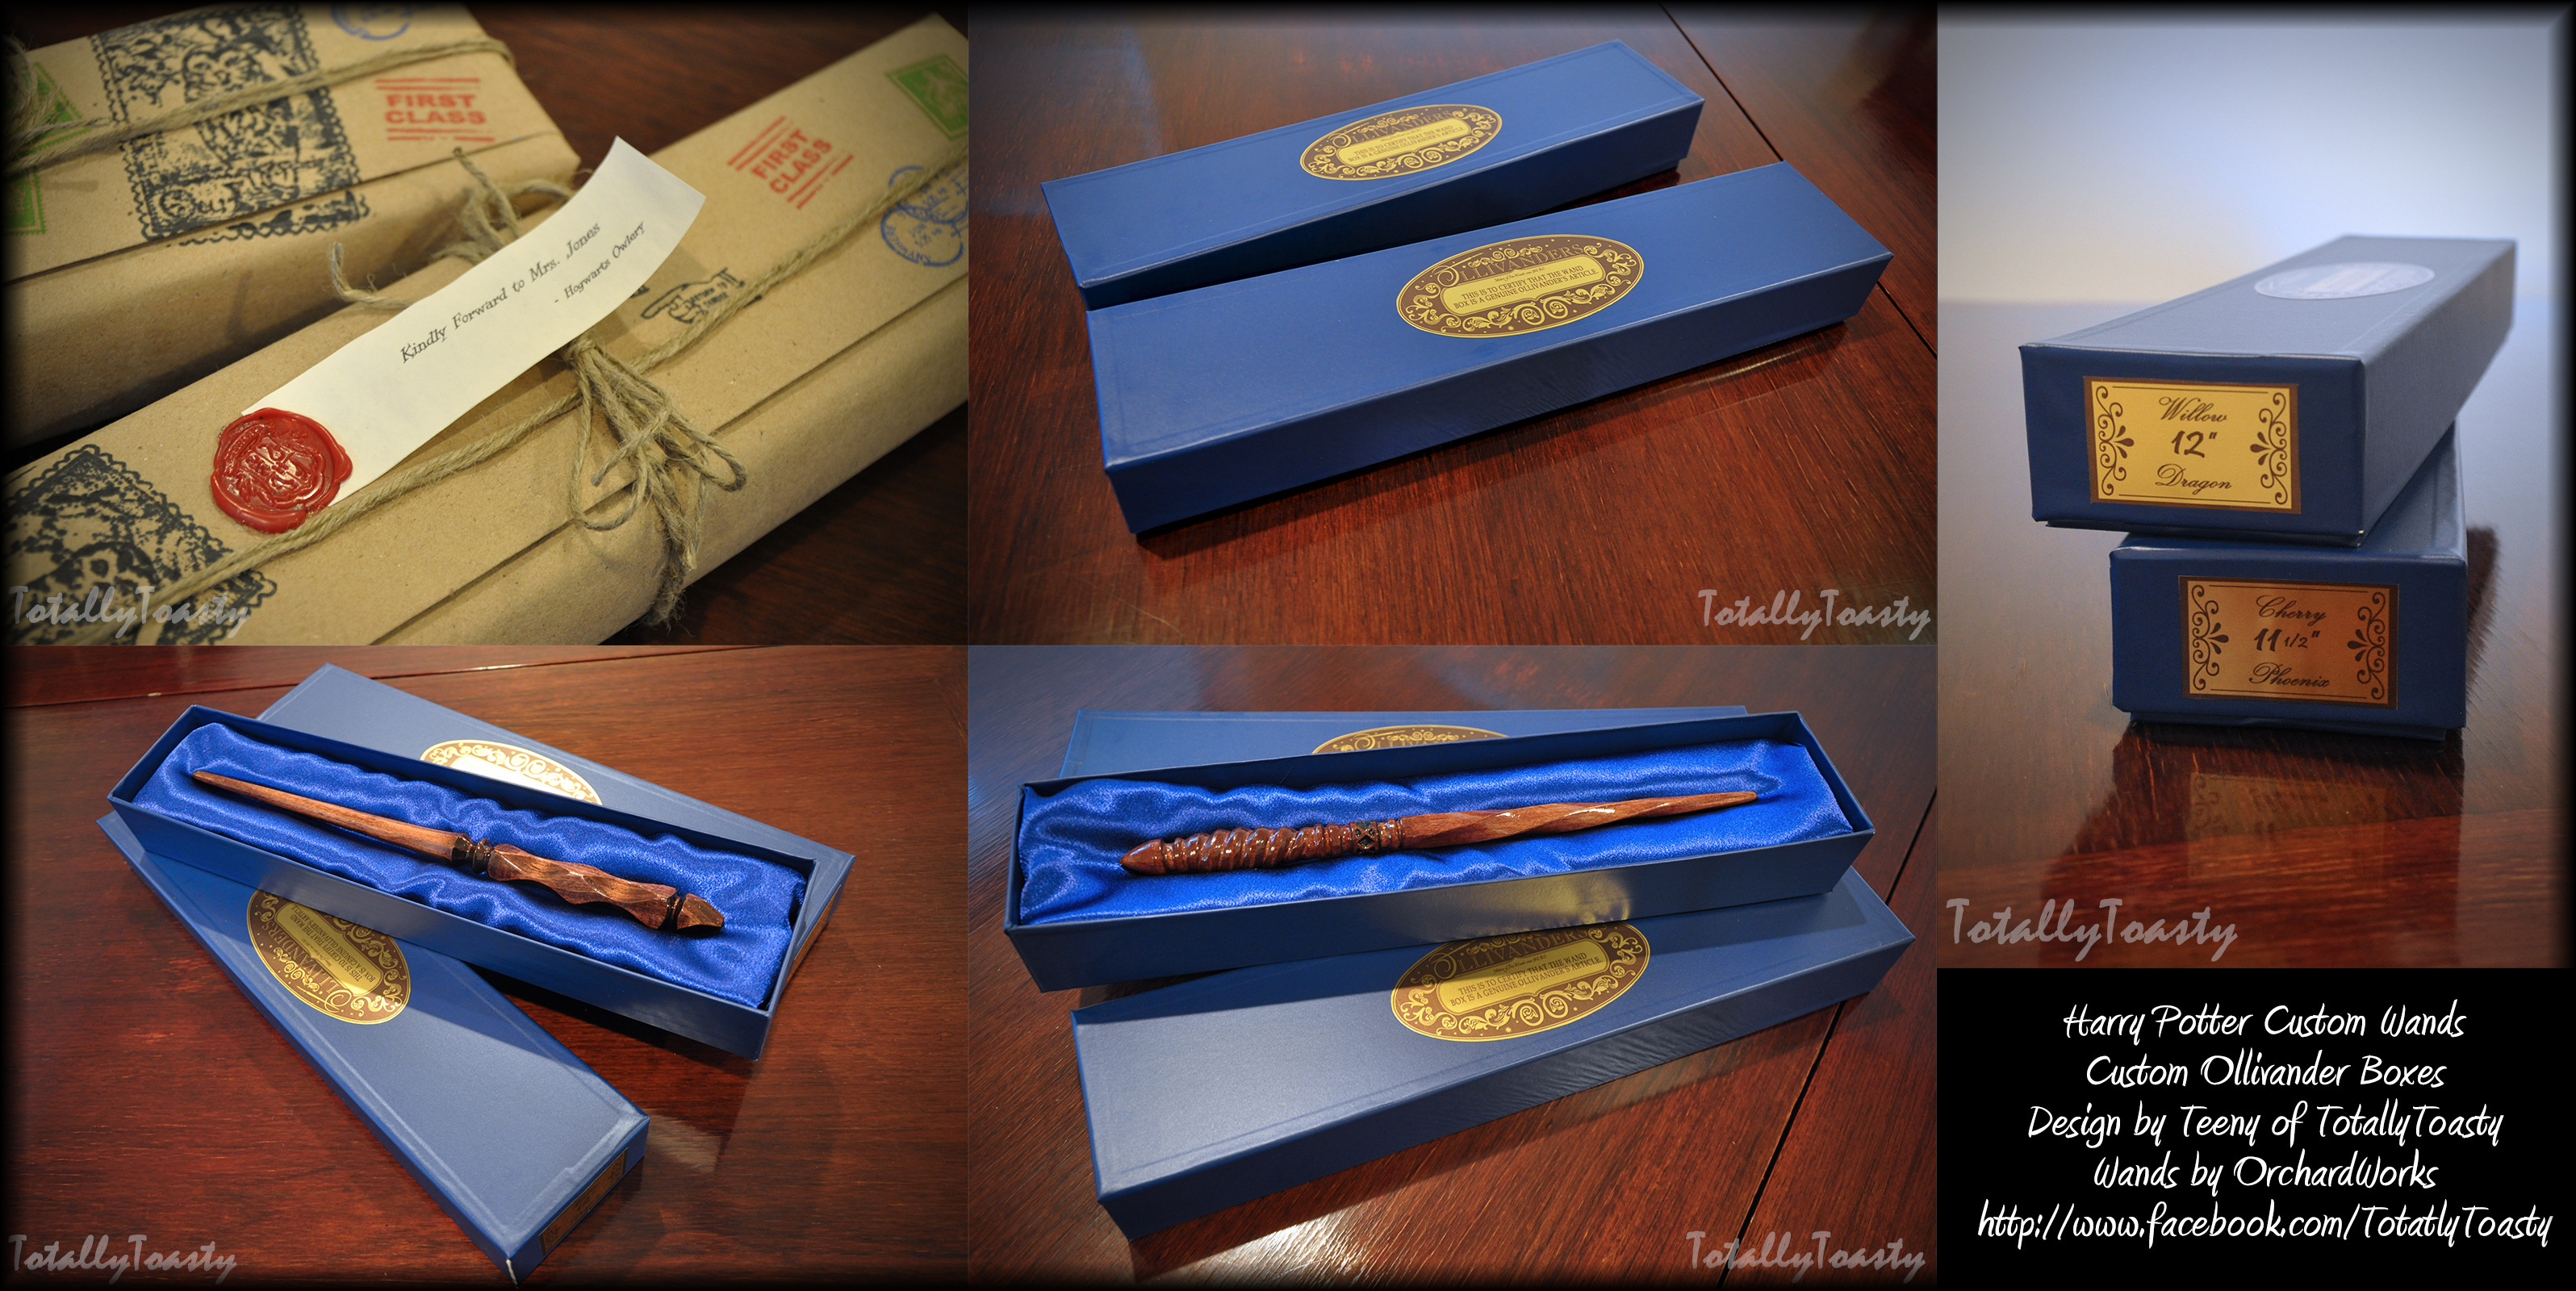 Harry Potter Wands And Ollivander Boxes by hiyoko-chan on DeviantArt 4636fc611030